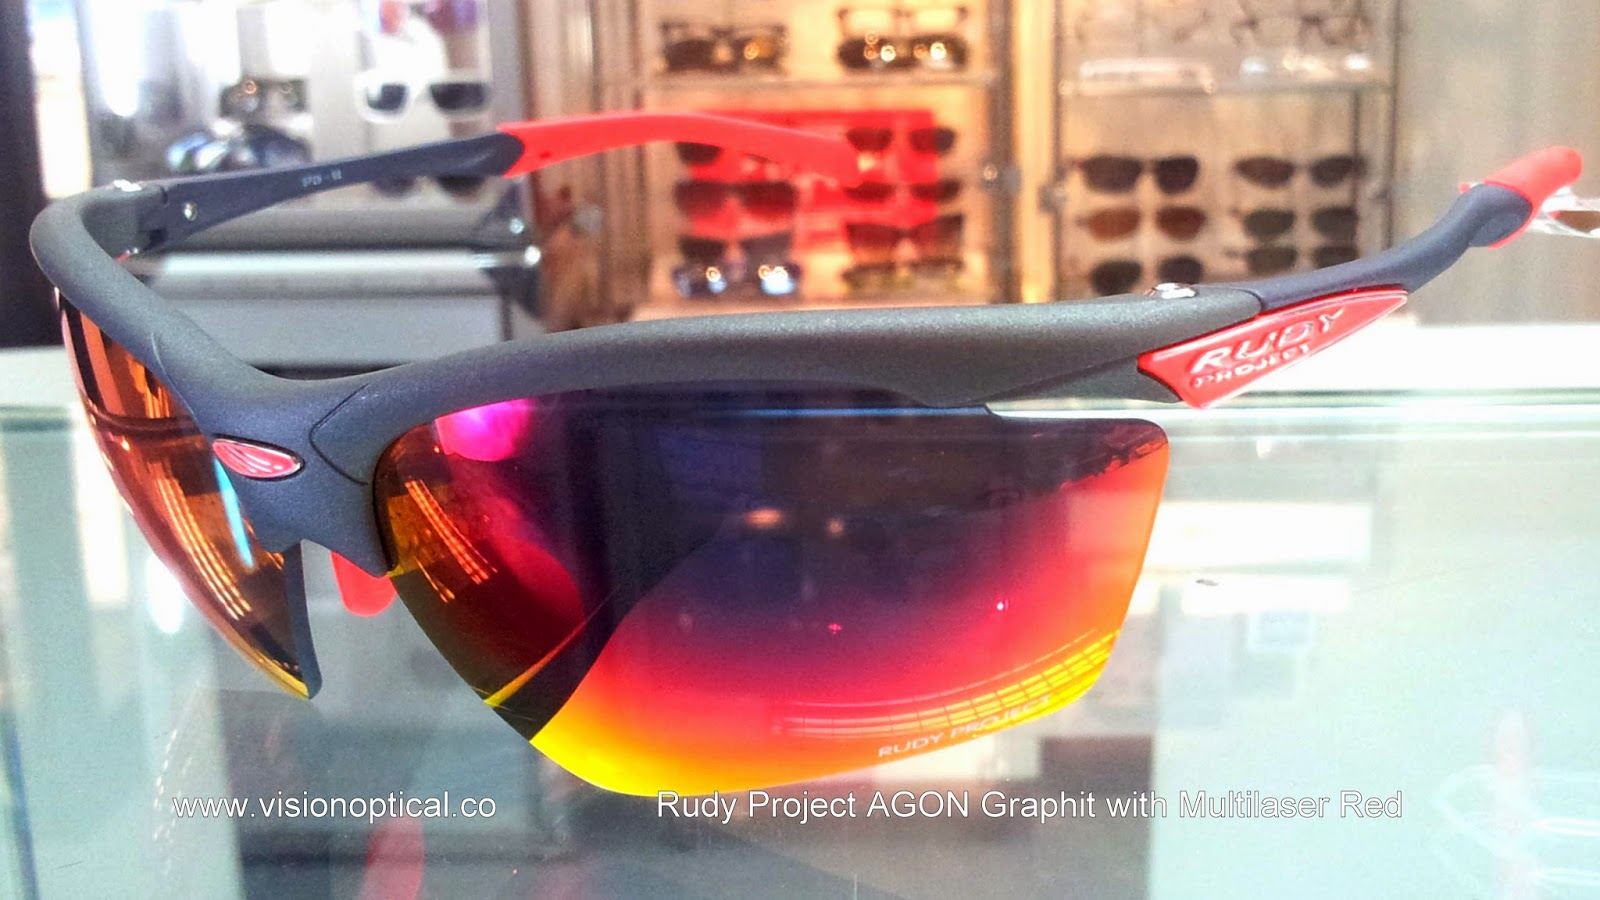 Rudy Project Agon Graphite Multilaser Red 太陽眼鏡